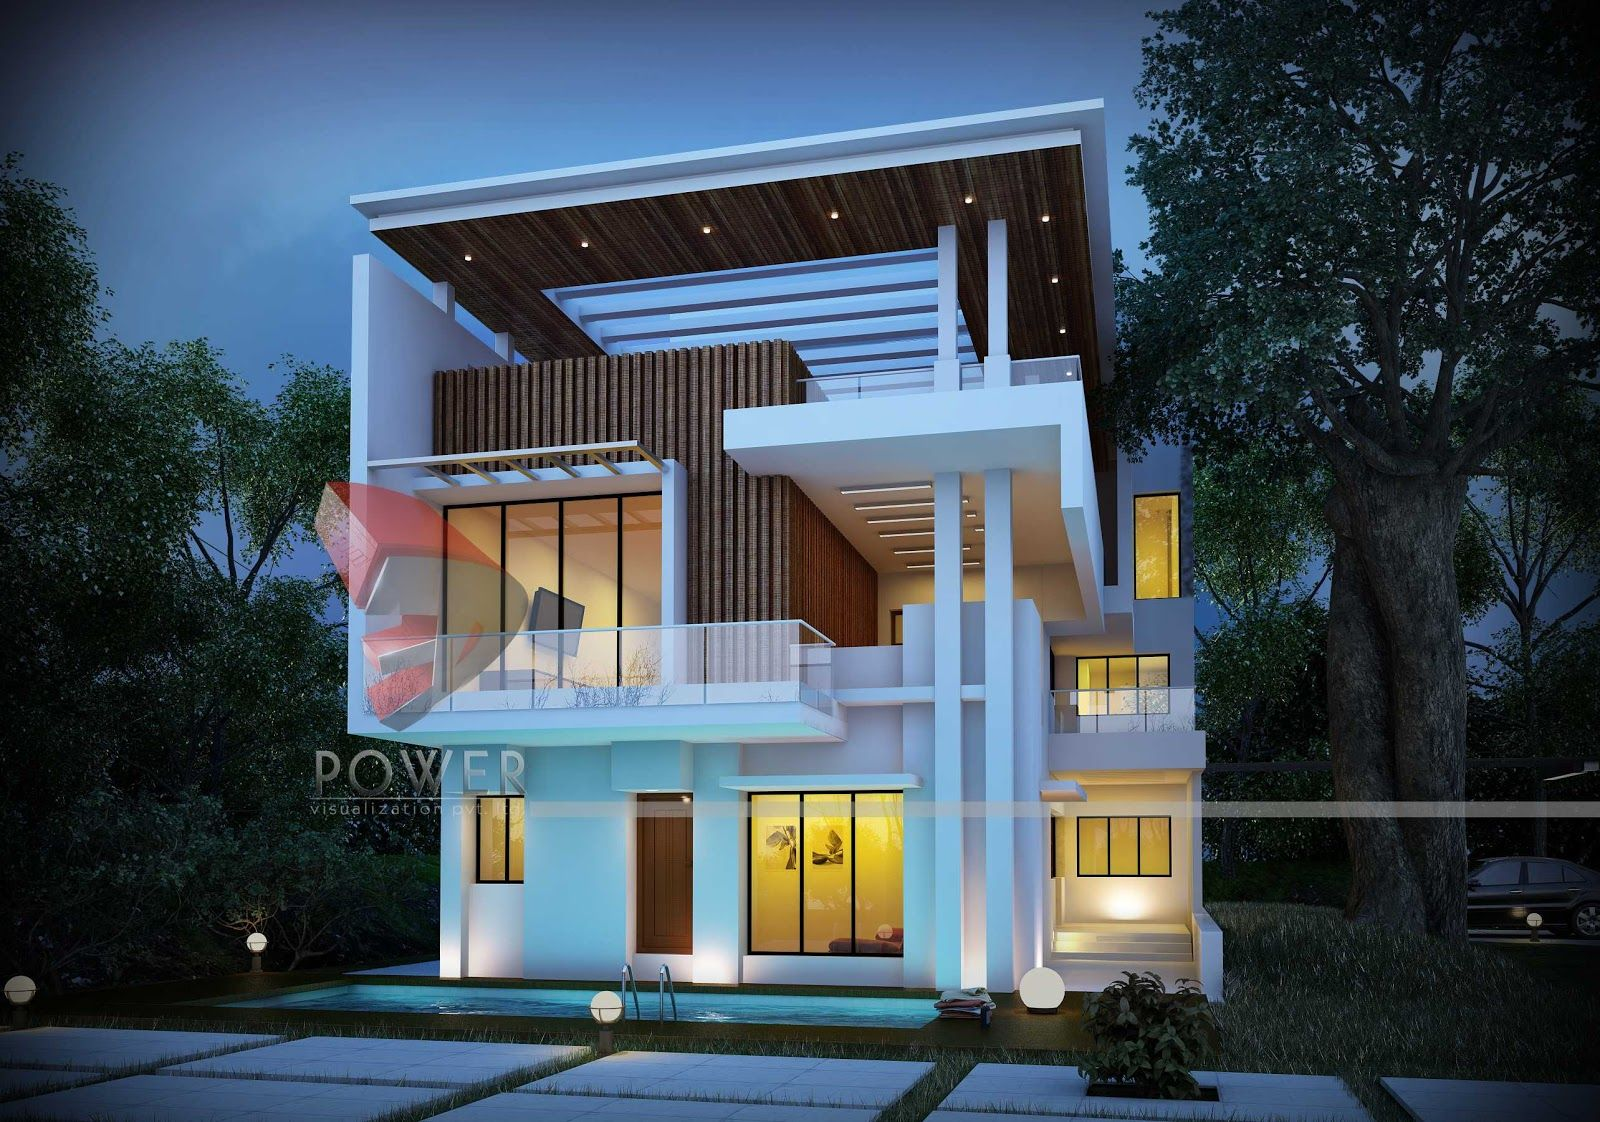 Modern architecture 3d architecture design modern architecture house designs miscellanea - New house design ...